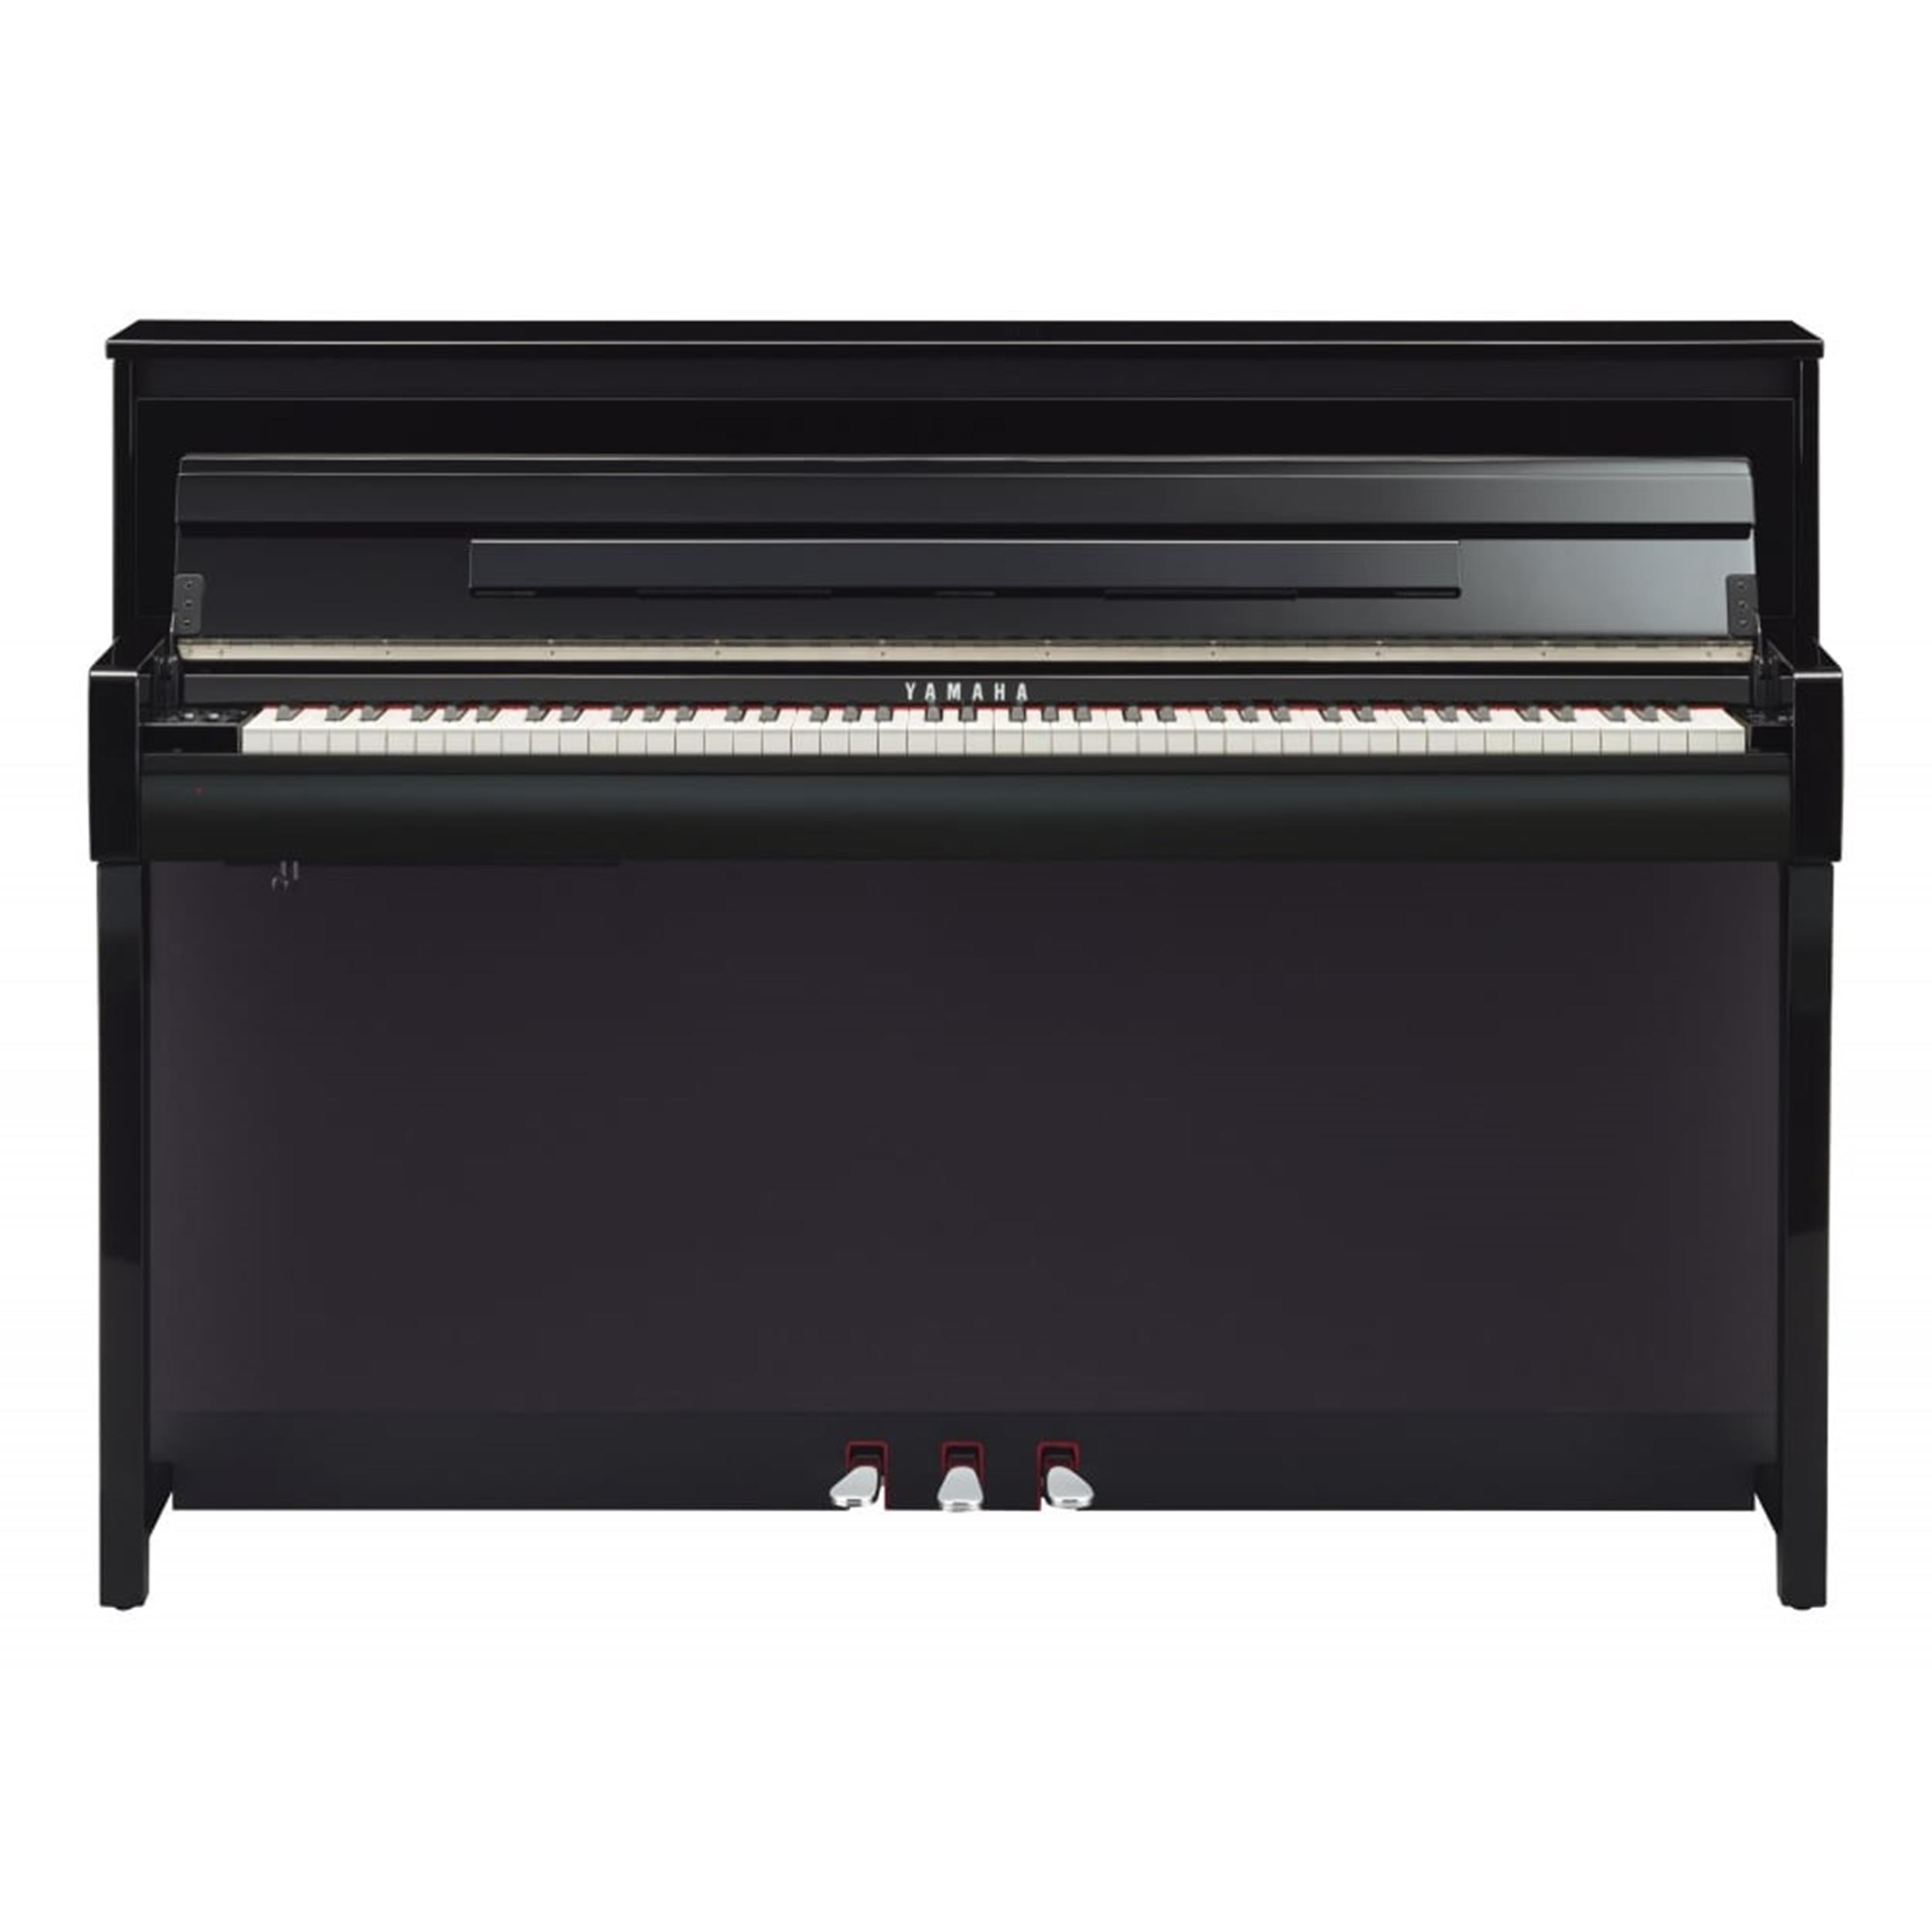 YAMAHA CLP685PE - CLAVINOVA - DIGITAL PIANO POLISHED BLACK - Tastiere Pianoforti Digitali